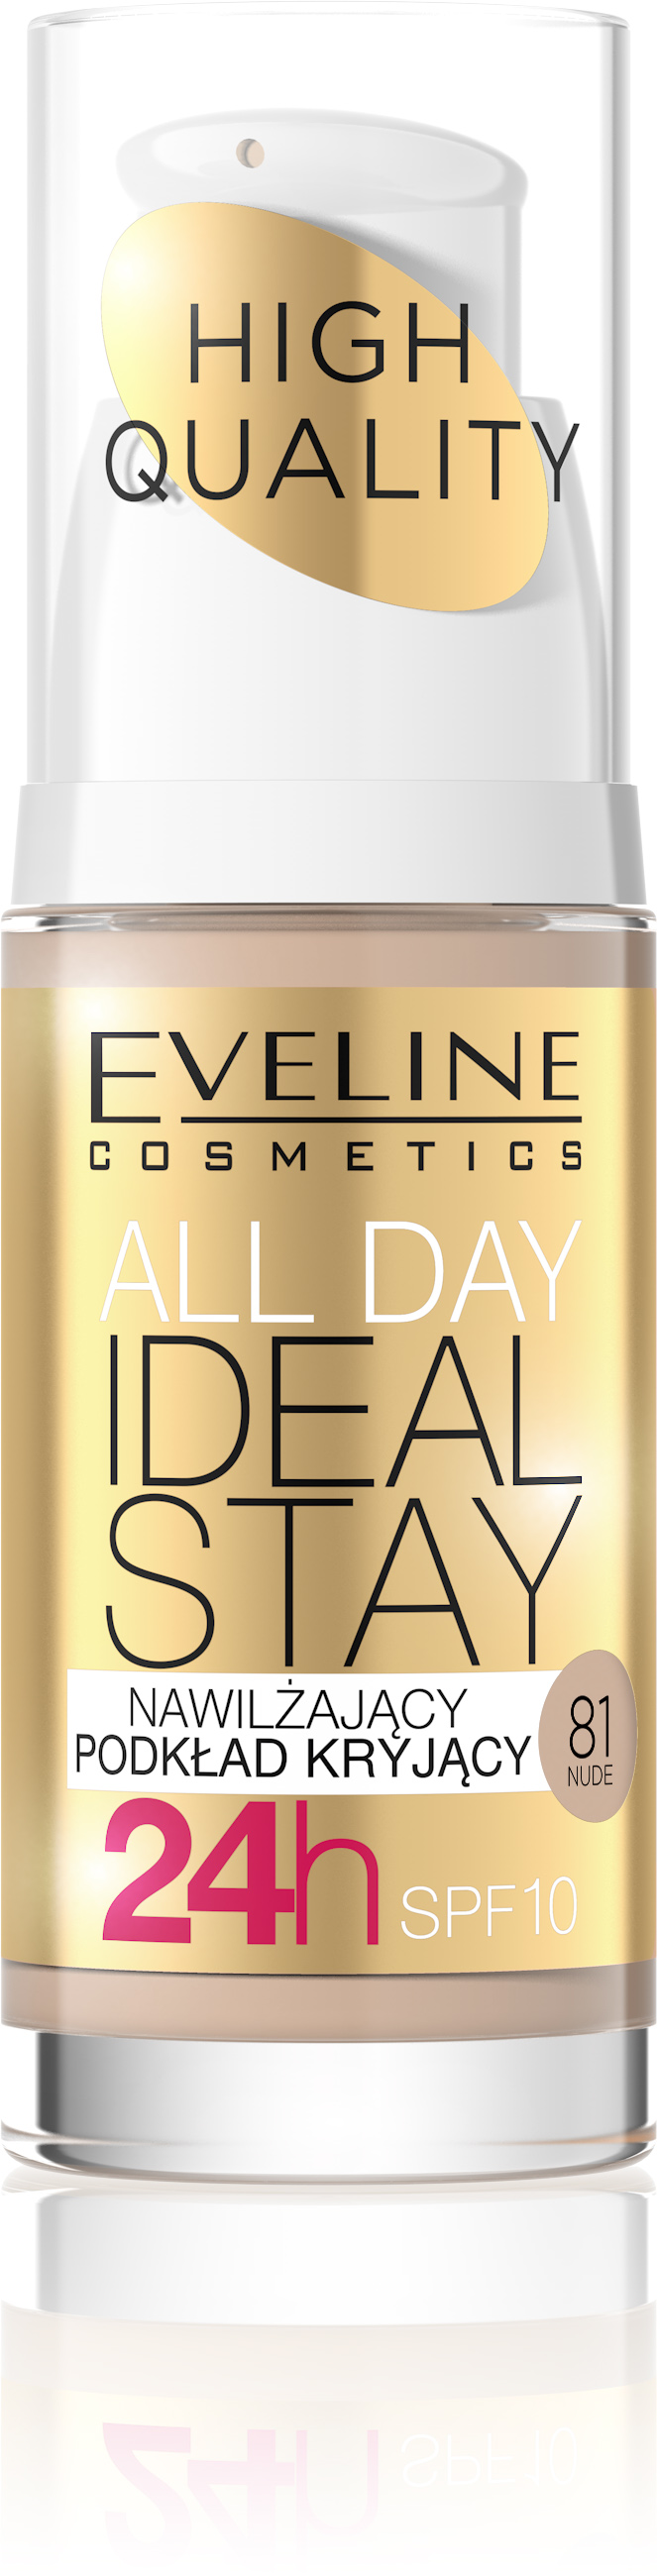 EVELINE krycí make-up all day IDEAL STAY 24h  81